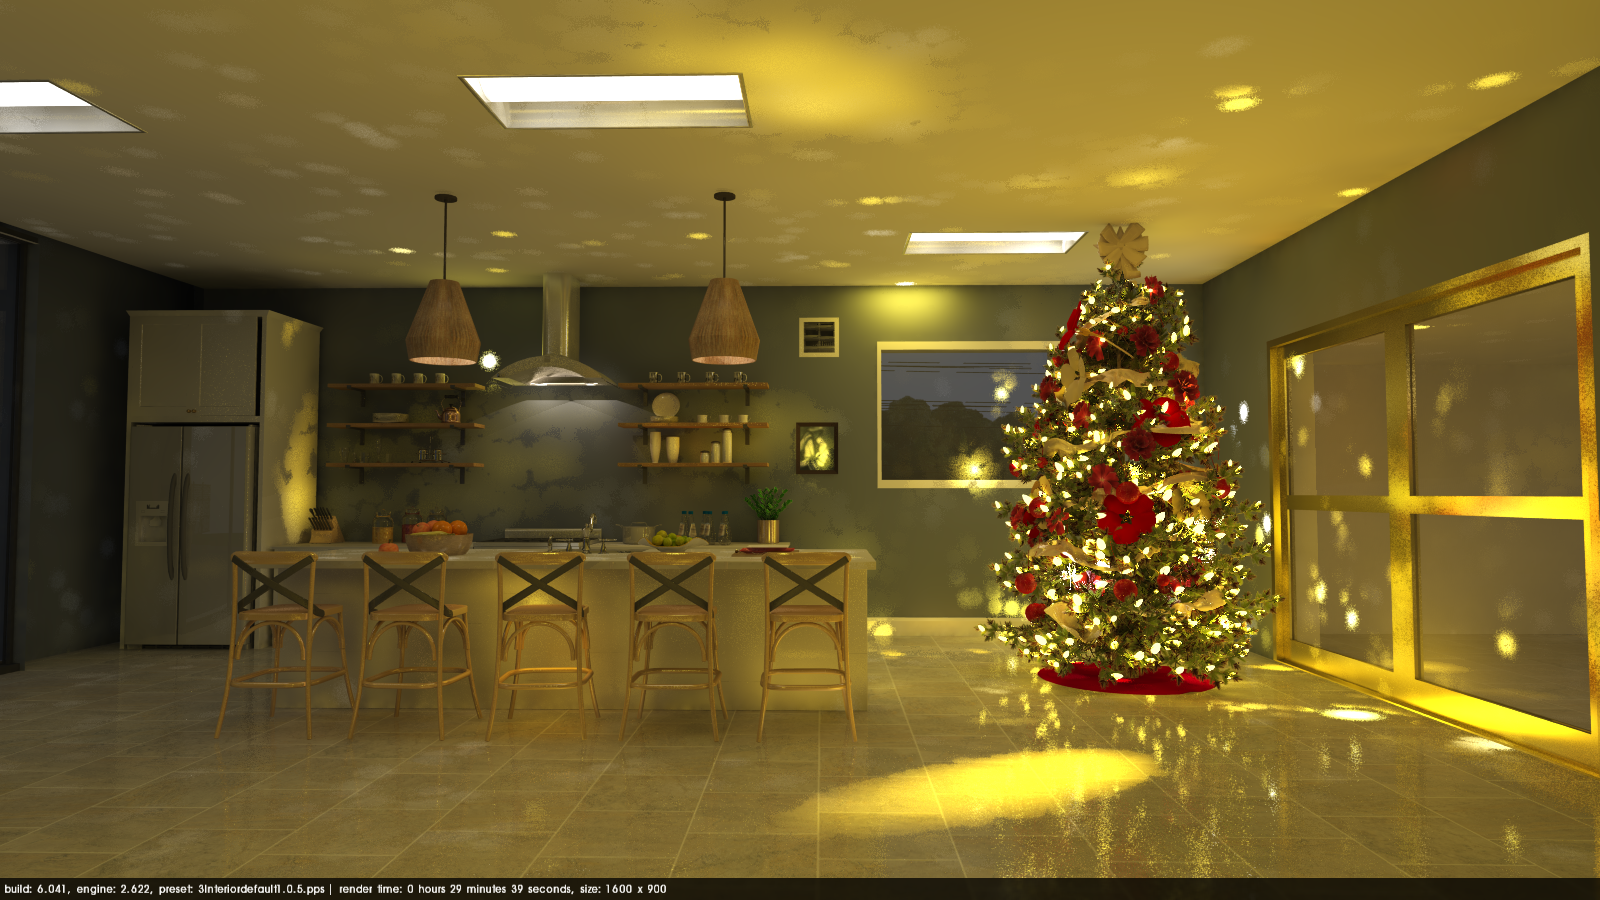 large-kitchen-show-room3 2020-01-02 11090500000.png